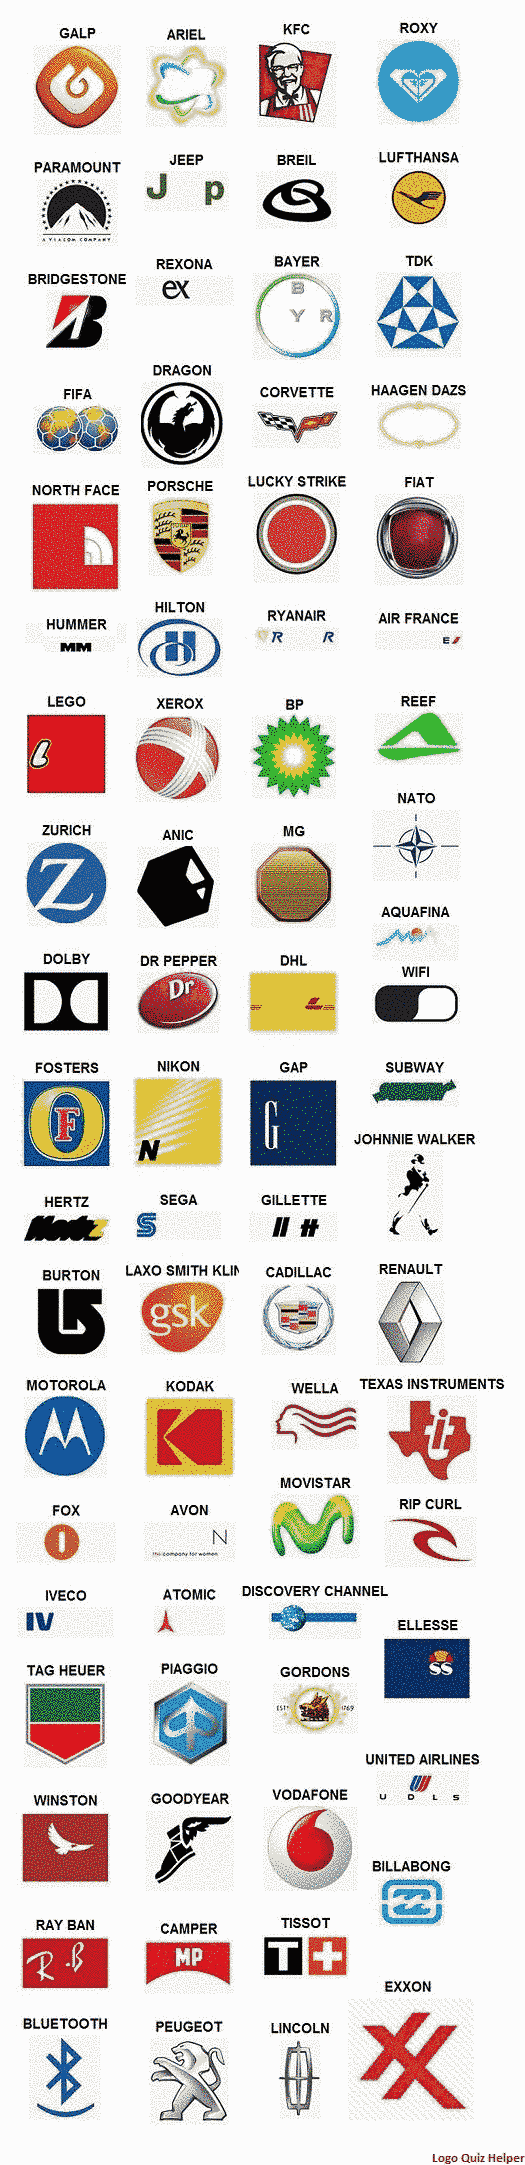 logo quiz answers level 4